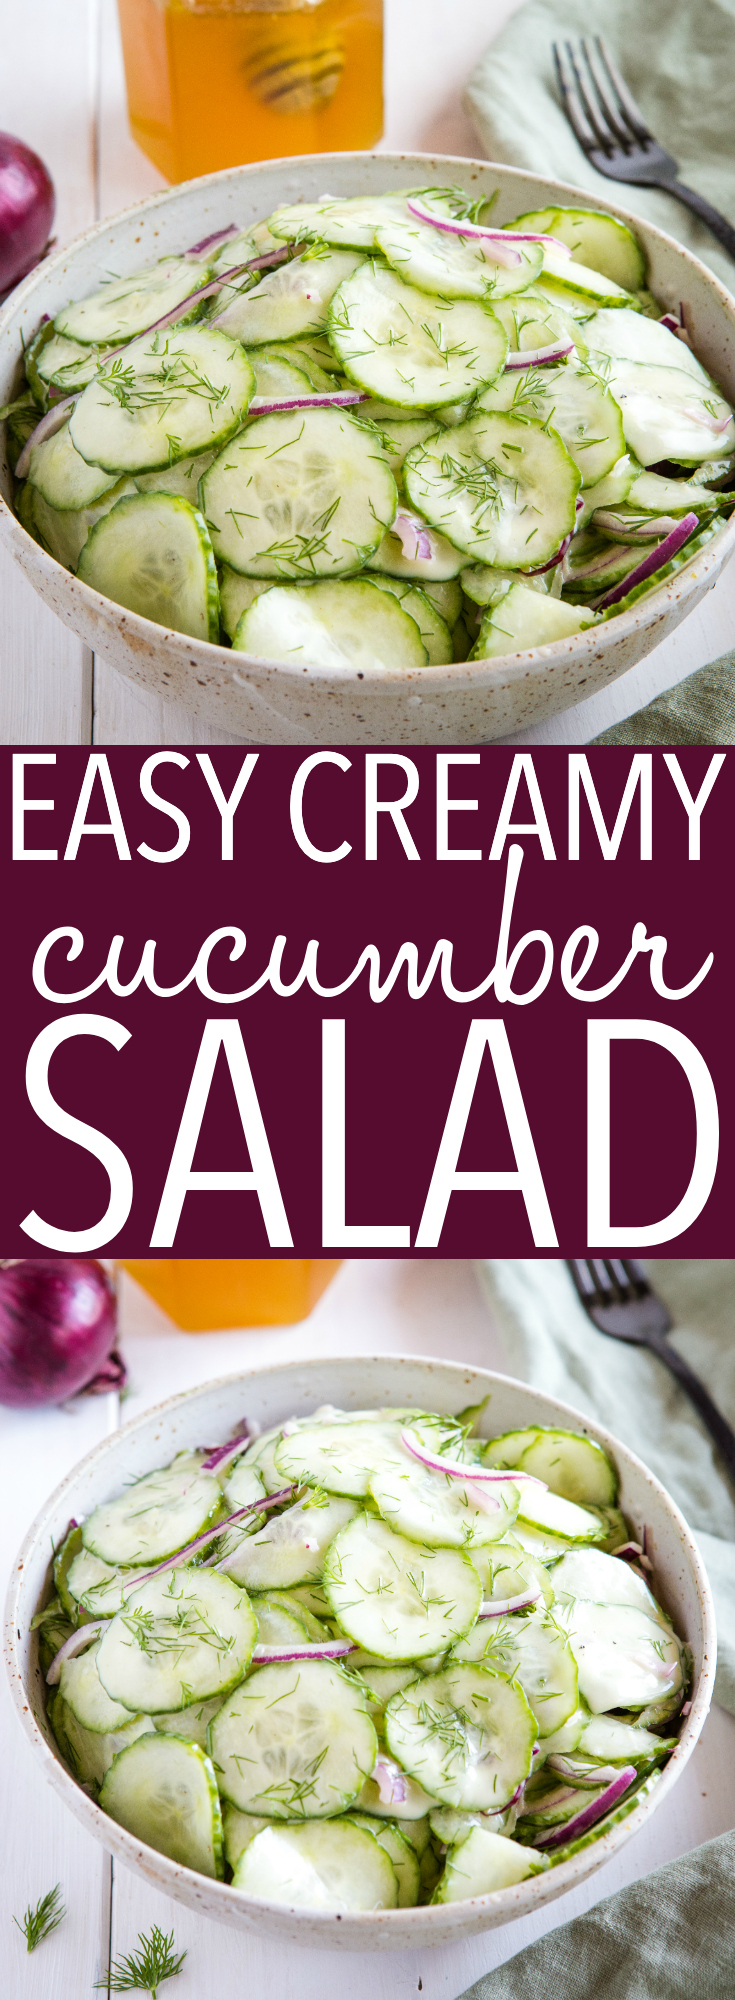 This Easy Creamy Cucumber Salad is the perfect simple summer side dish for picnics, barbecues and weeknight meals. Make it in minutes with only a few ingredients! Recipe from thebusybaker.ca! #salad #picnic #cucumber #barbecue #healthy #sidedish #potluck #vegetarian #vegan via @busybakerblog